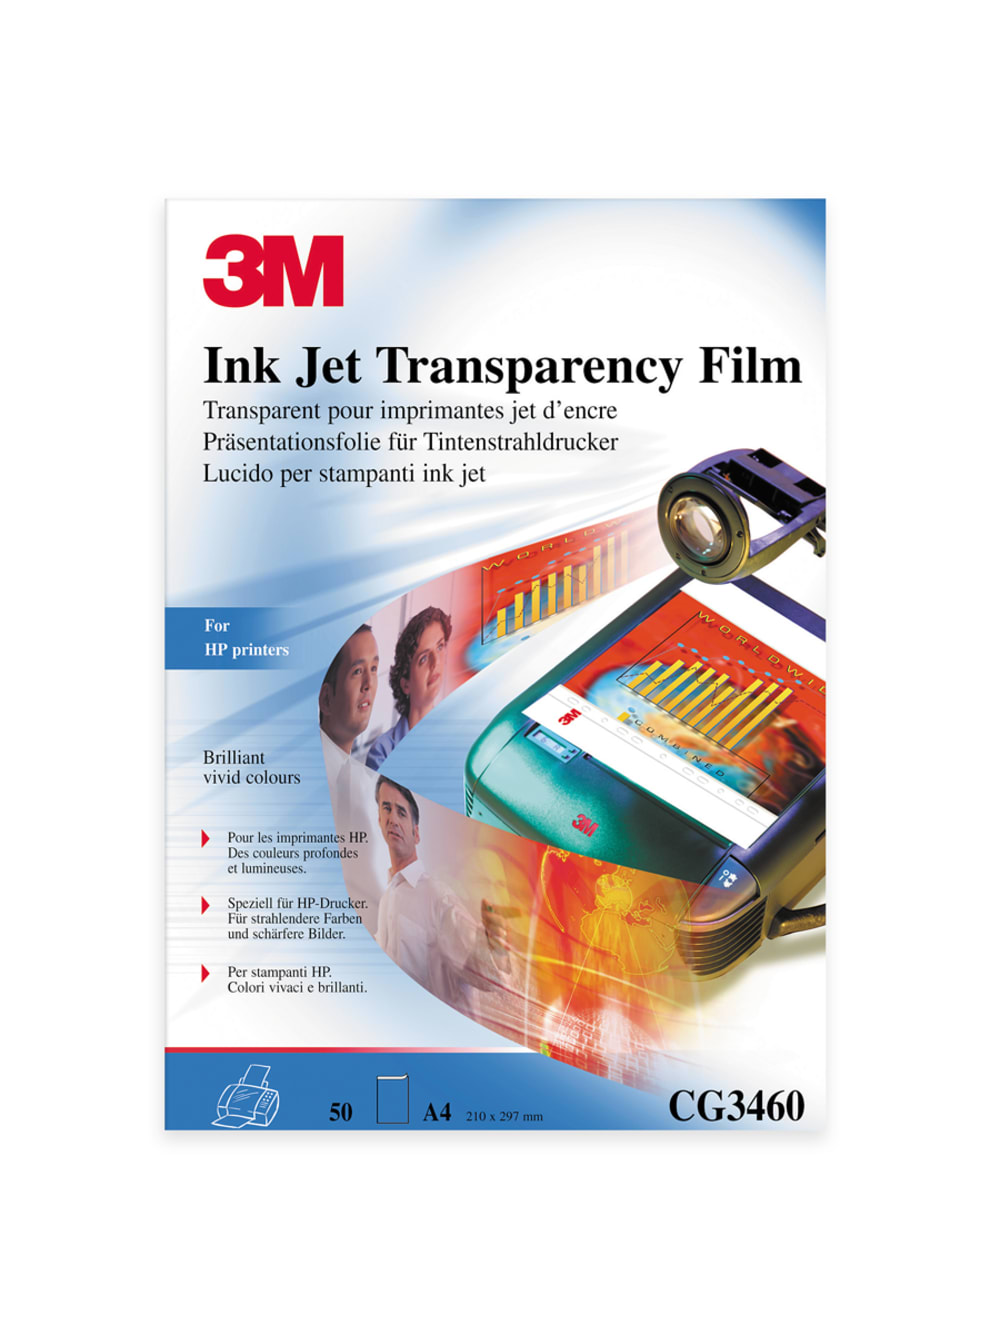 3M Transparency Film Ink Jet Printers CG3460 50 Sheets for sale online